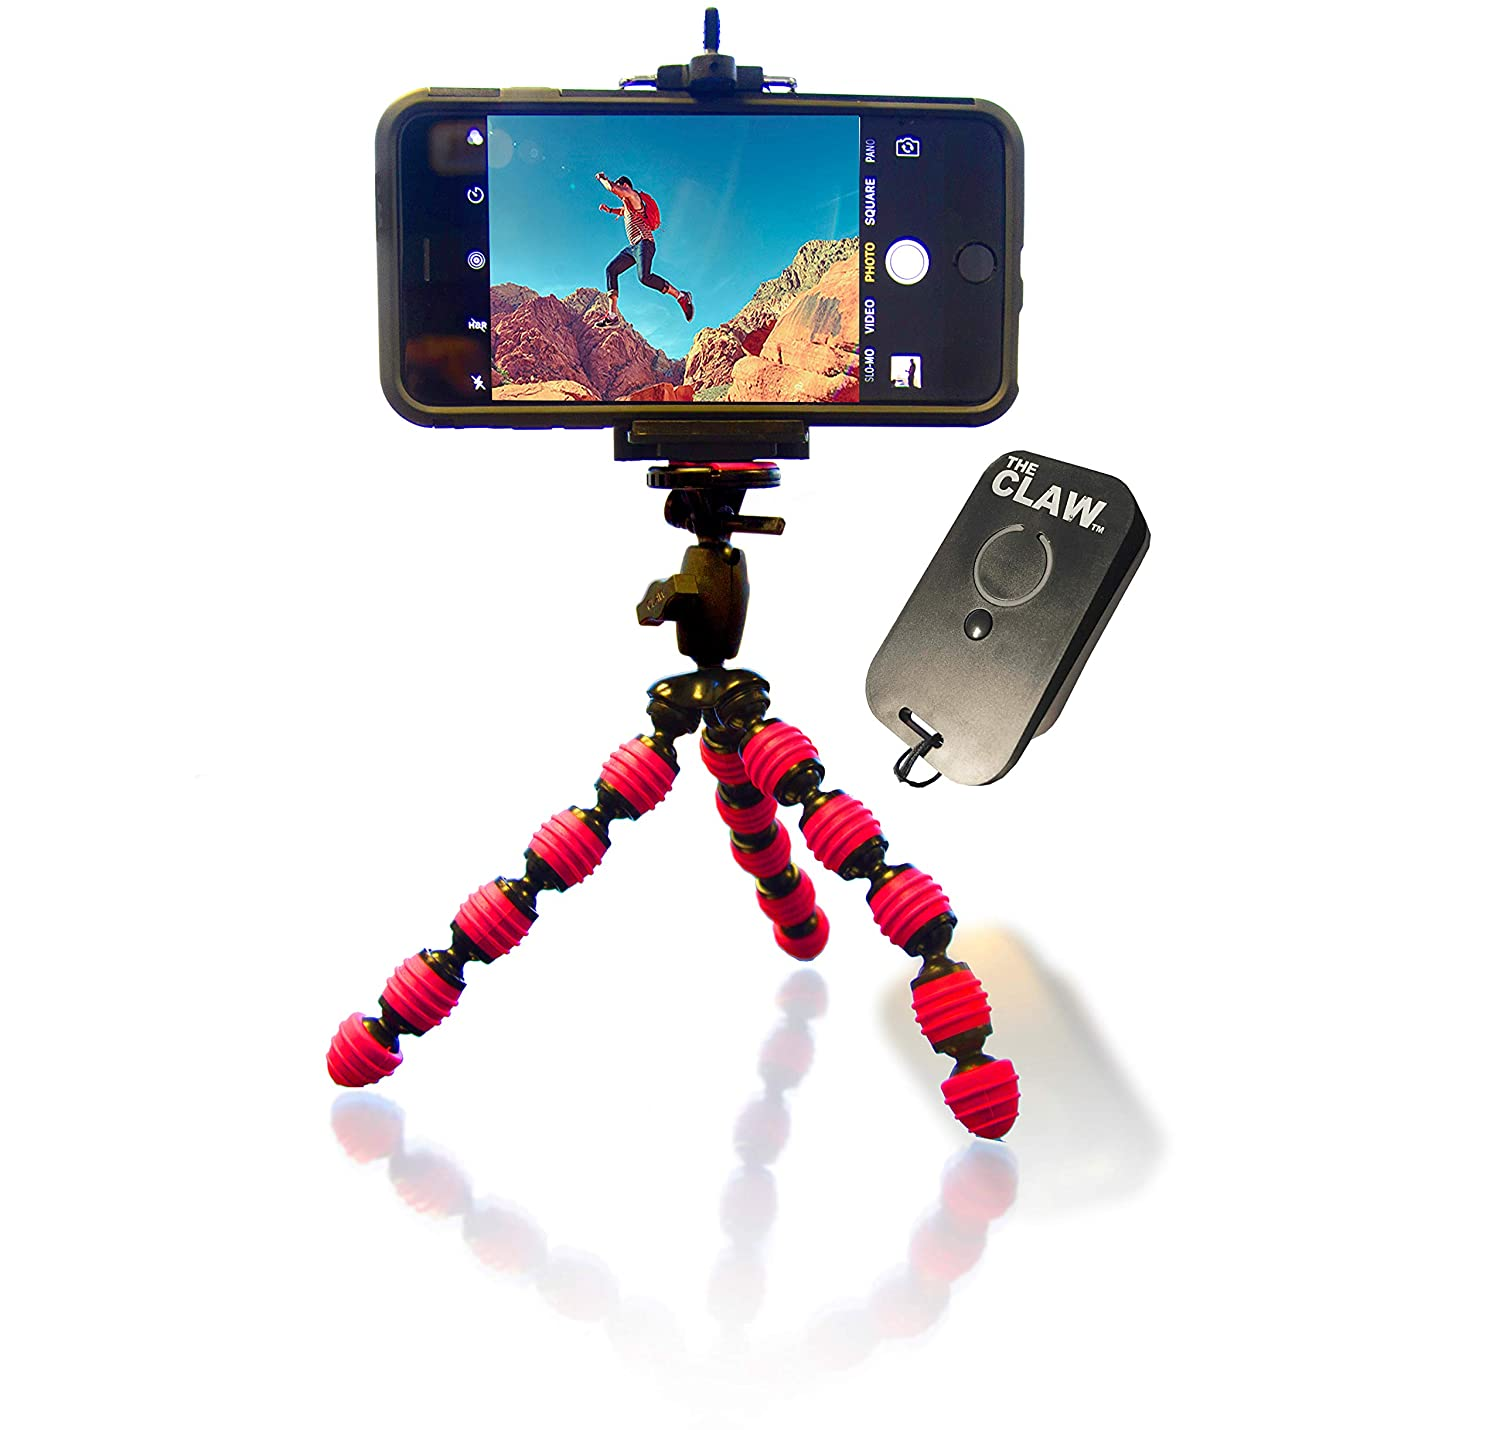 sale retailer ad4df 519a3 Flexible Tripod Bundle for iPhone XR XS X 8 7 6 - USB Rechargeable Remote  for iOS iPhone Compact Bendable Smartphone Mount Locking Head Peak Design,  ...